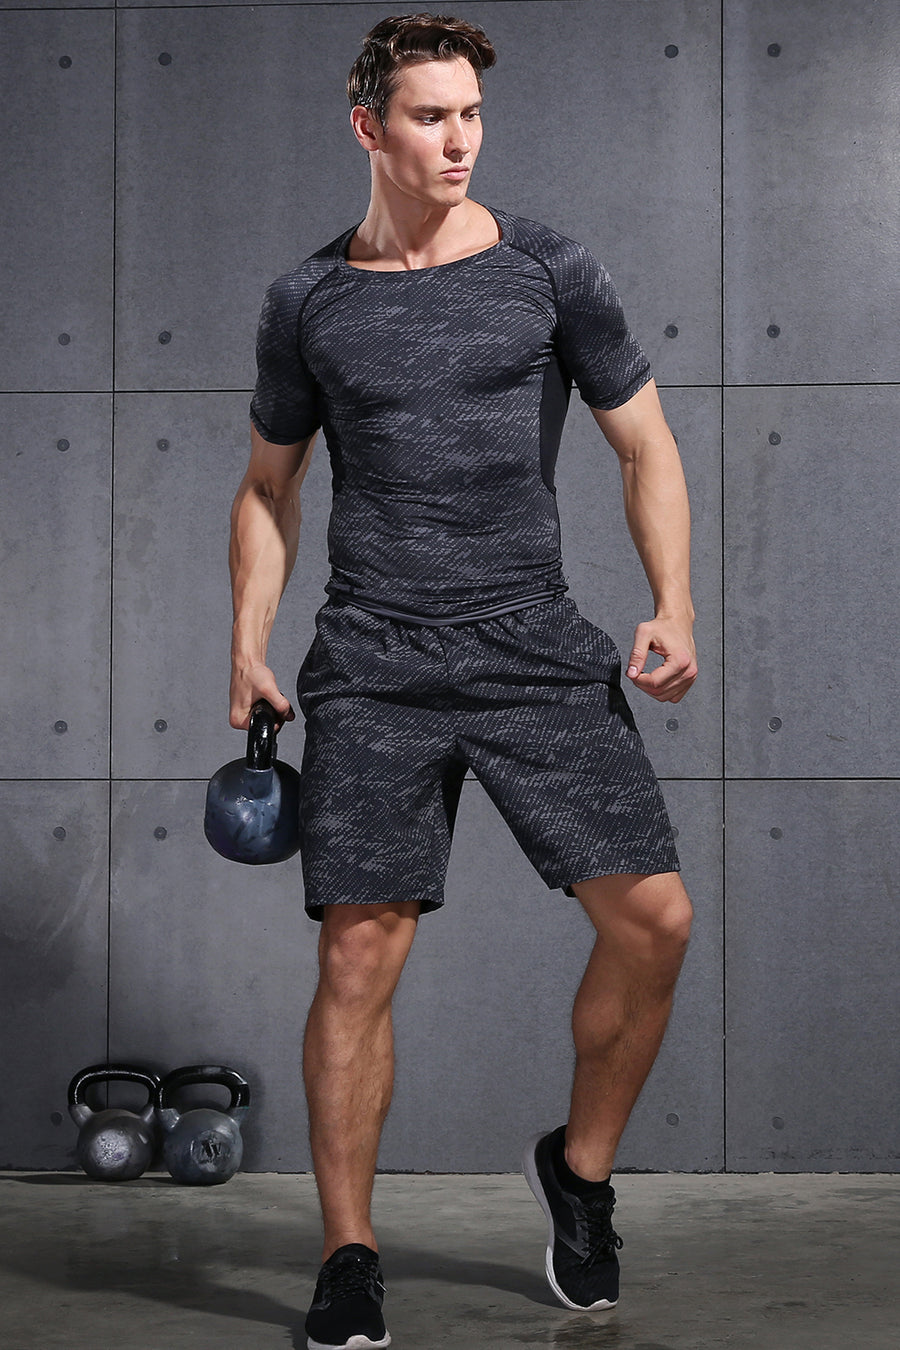 Running Sets Men's Workout Clothes - GINGTTO